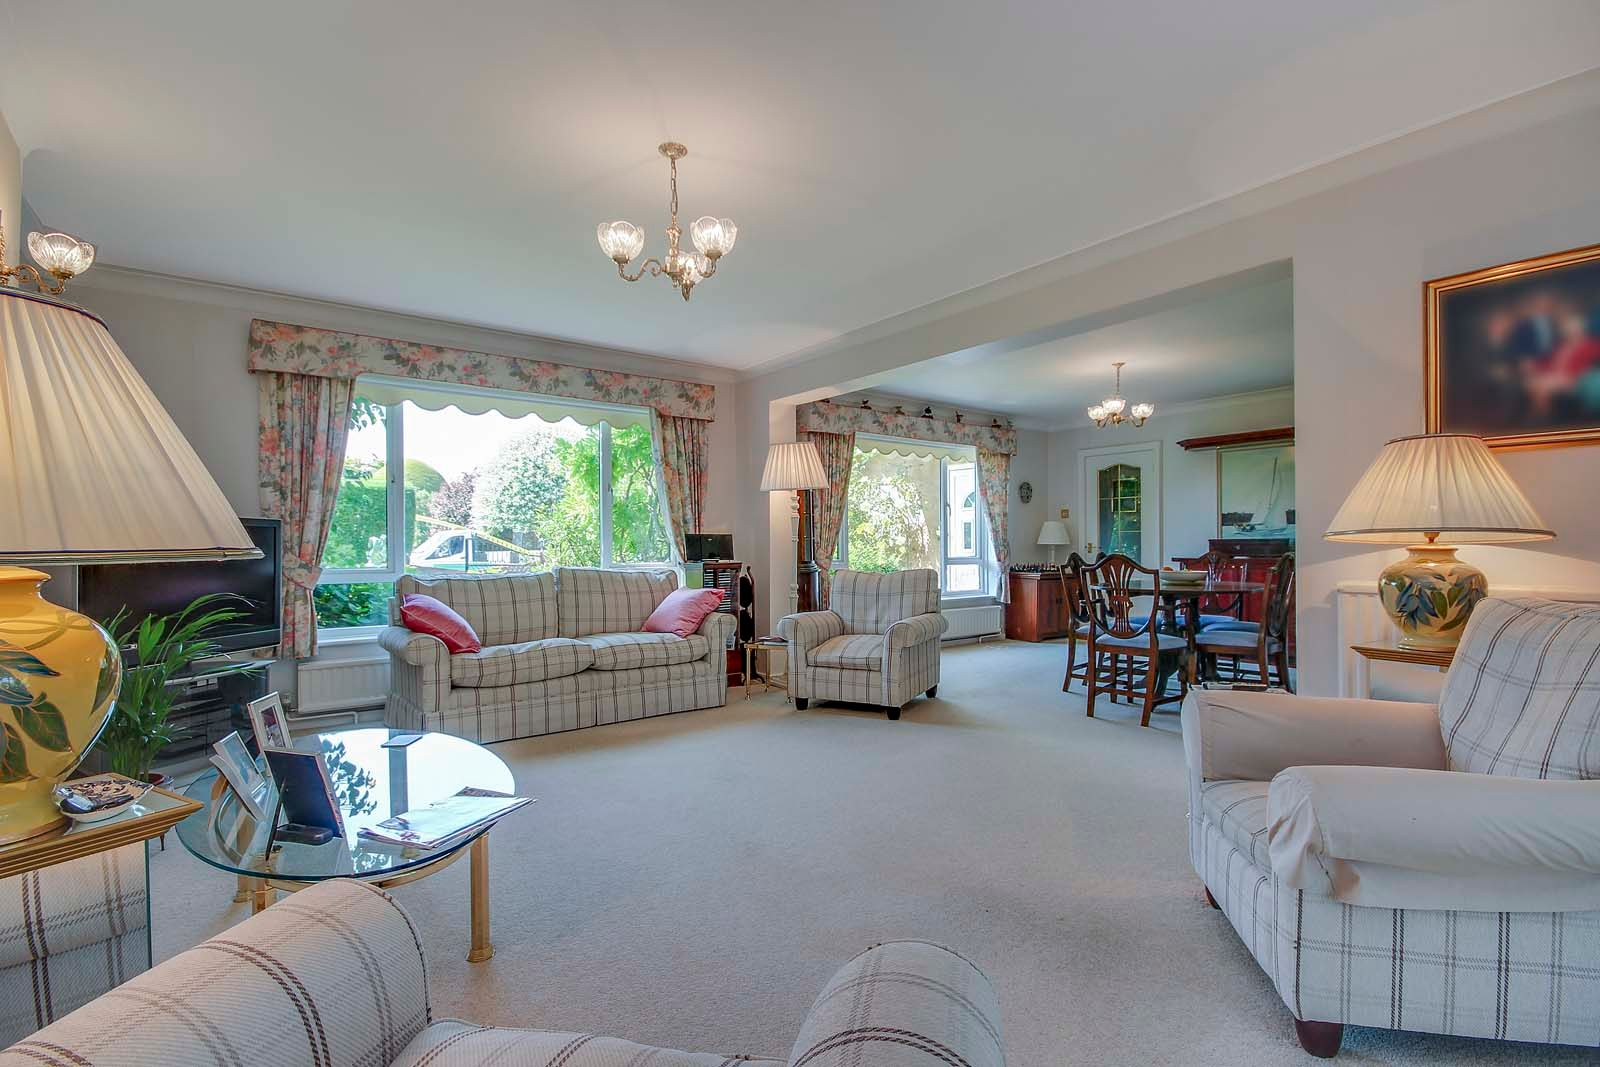 5 bed house for sale in The Ridings COMP 2019 12